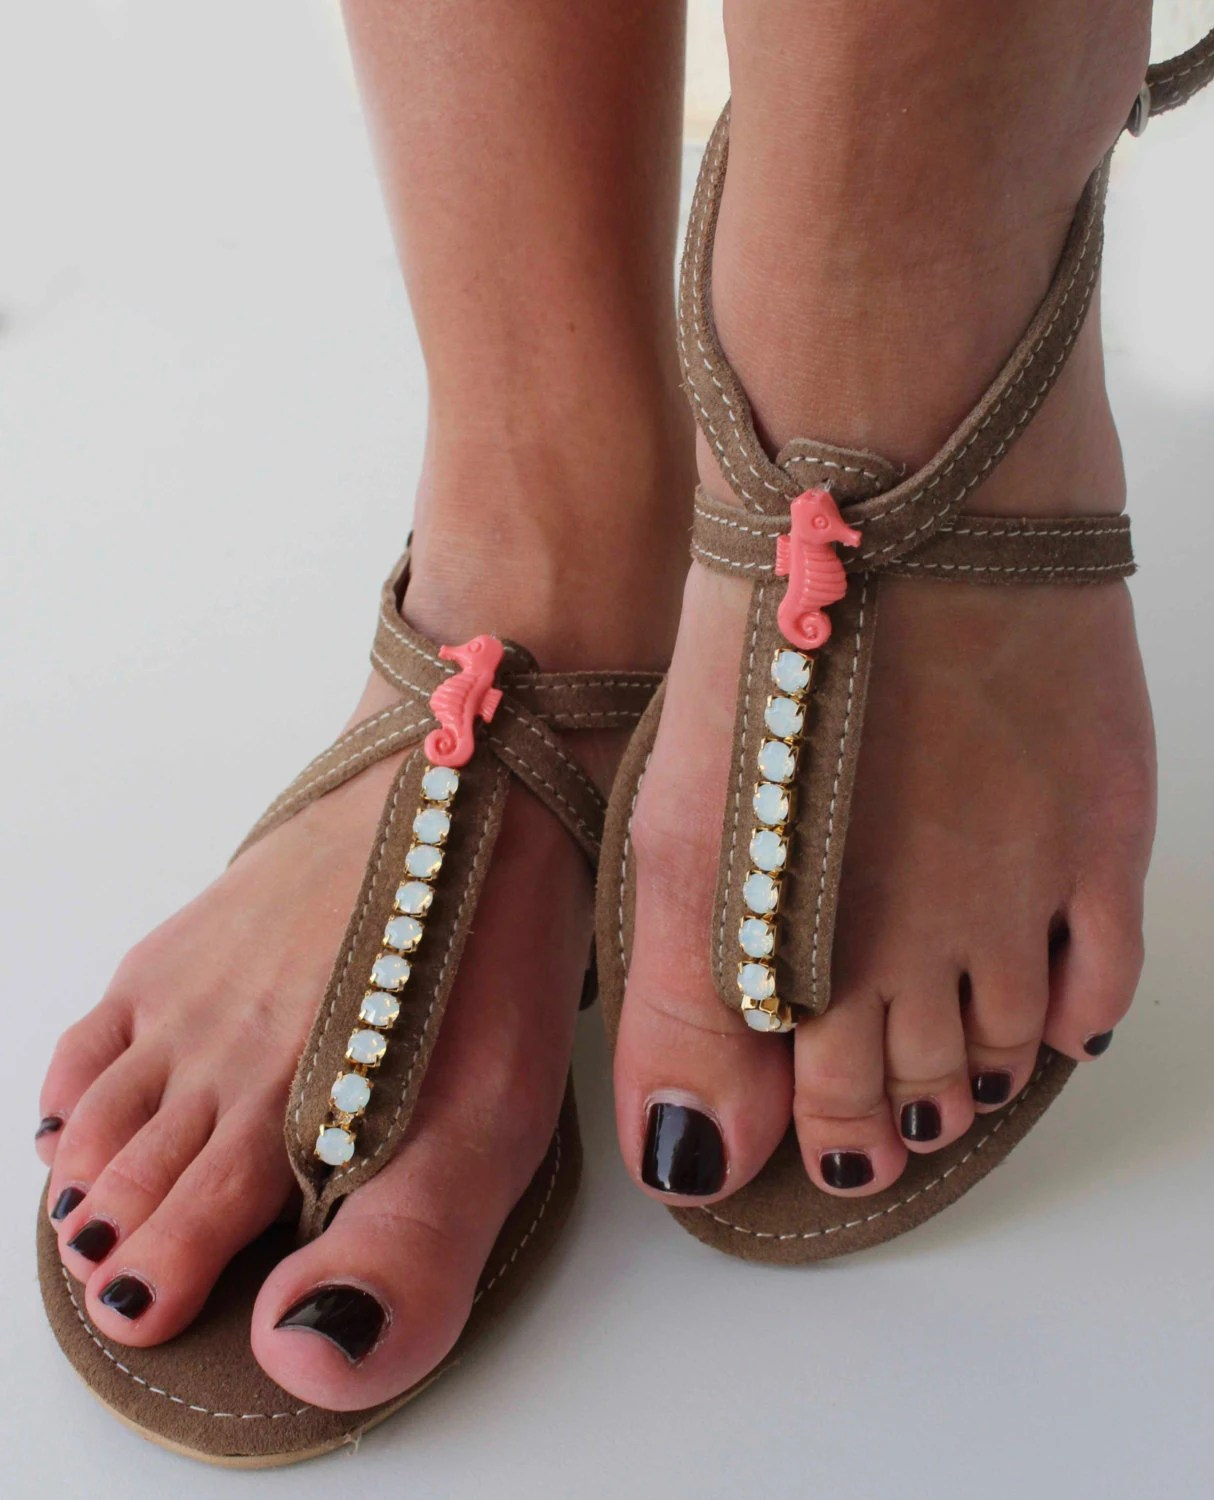 Leather Sandals with Swarovski and Coral Seahorse - Greek Leather sandals - Summer shoes